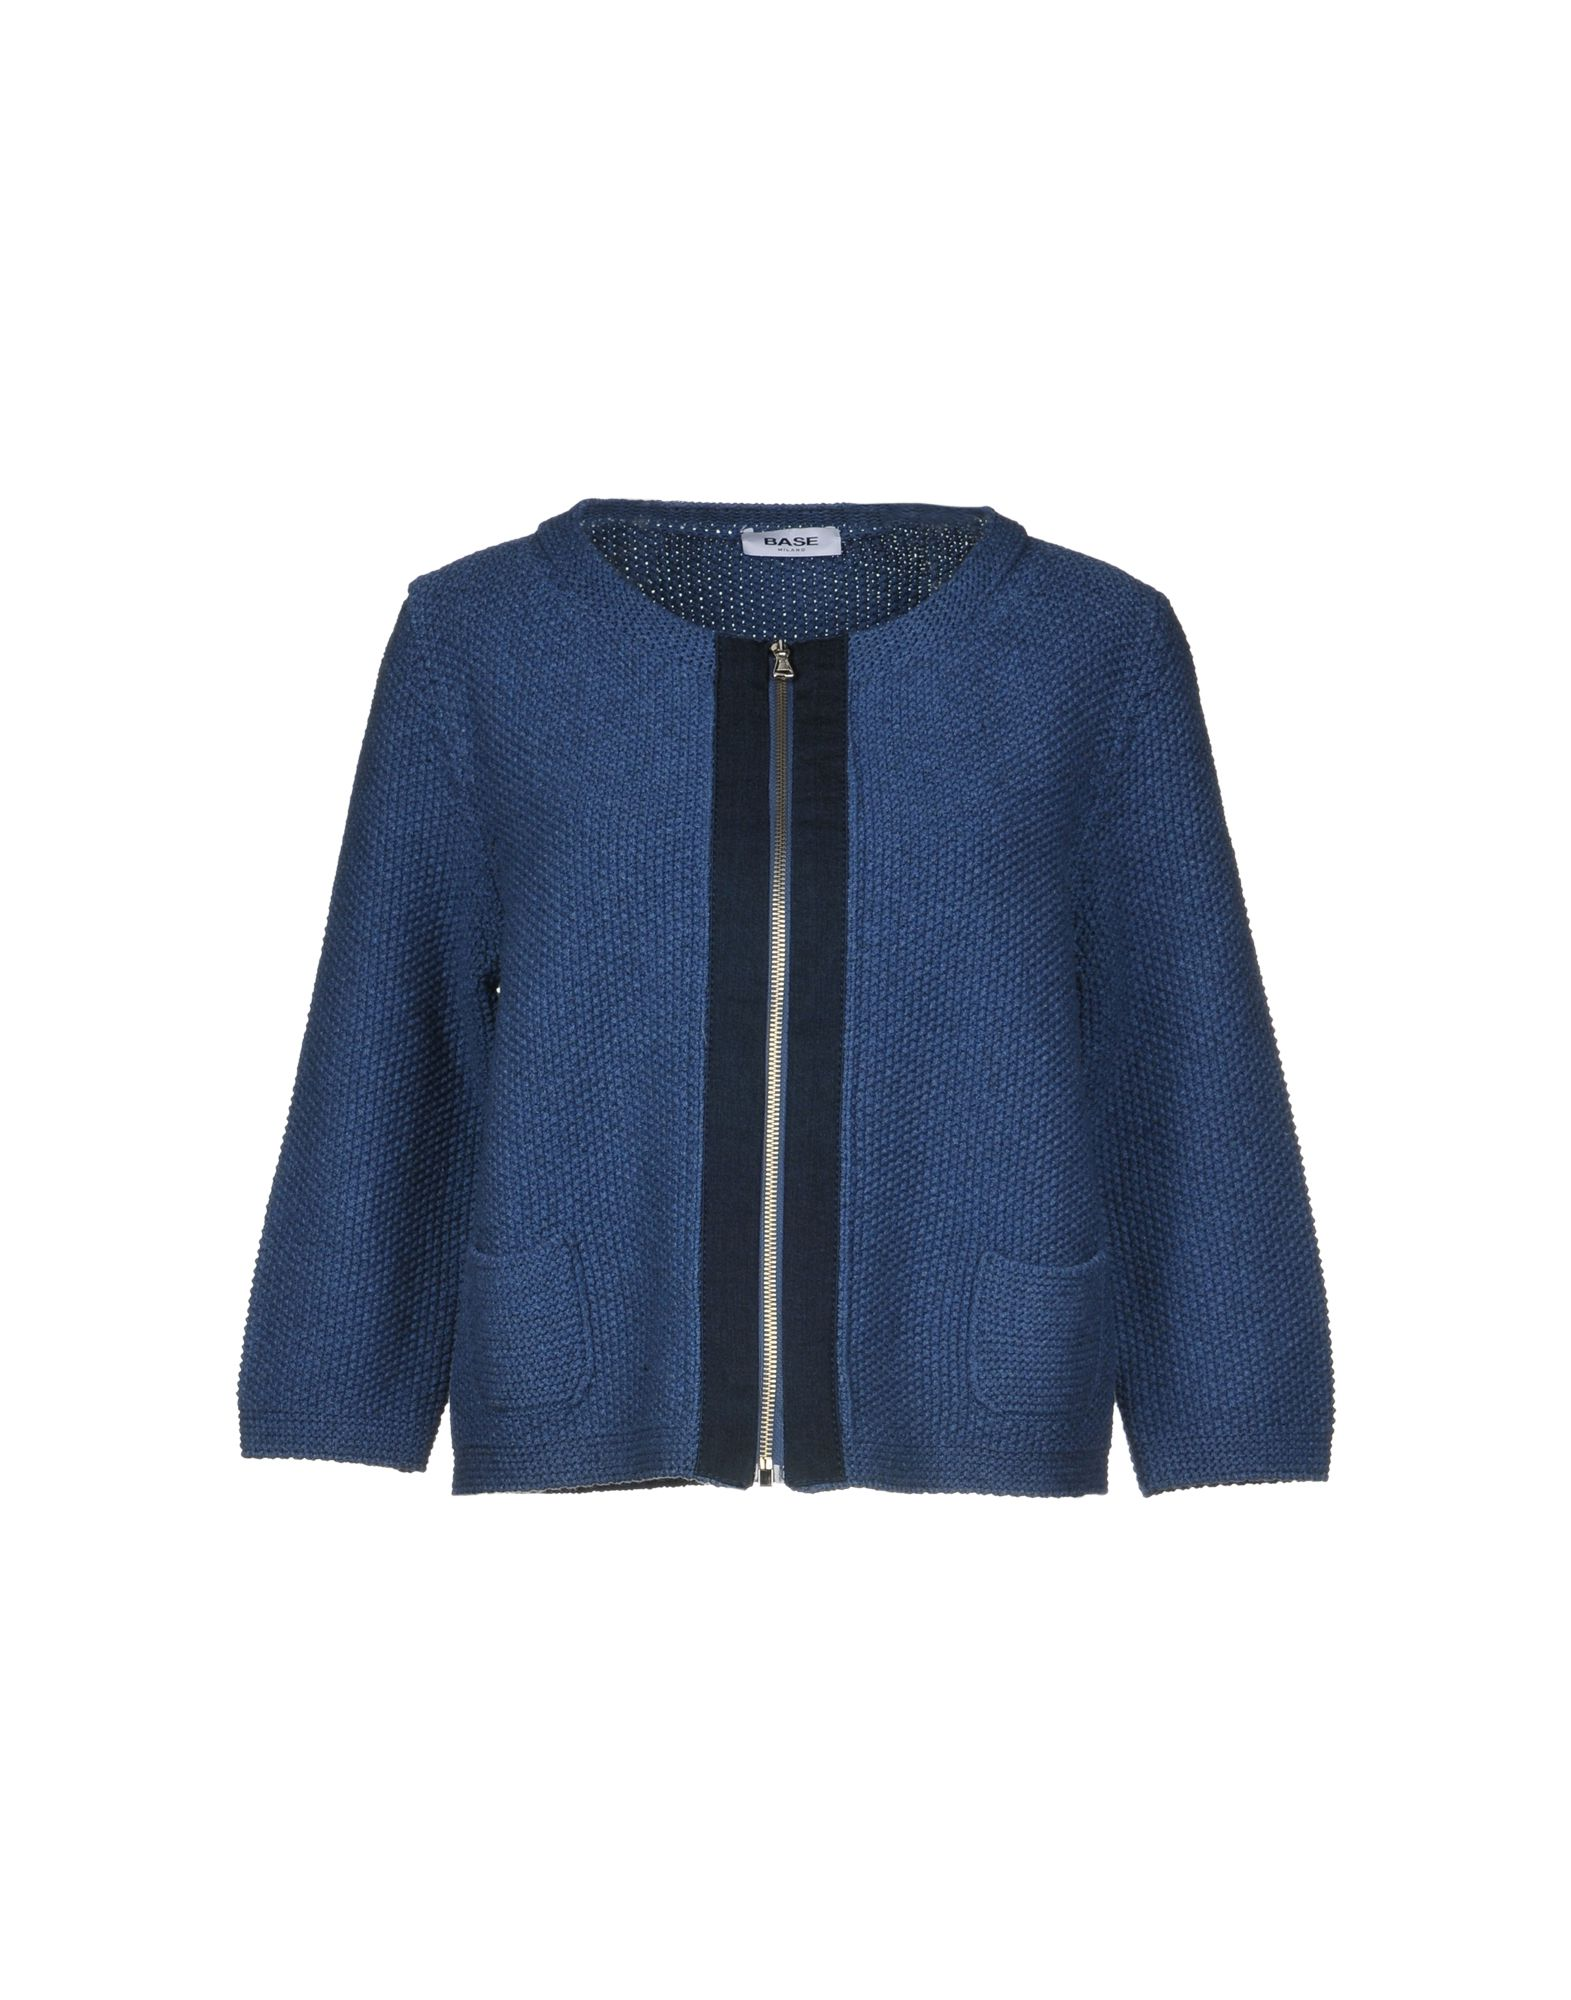 BASE Cardigan in Slate Blue